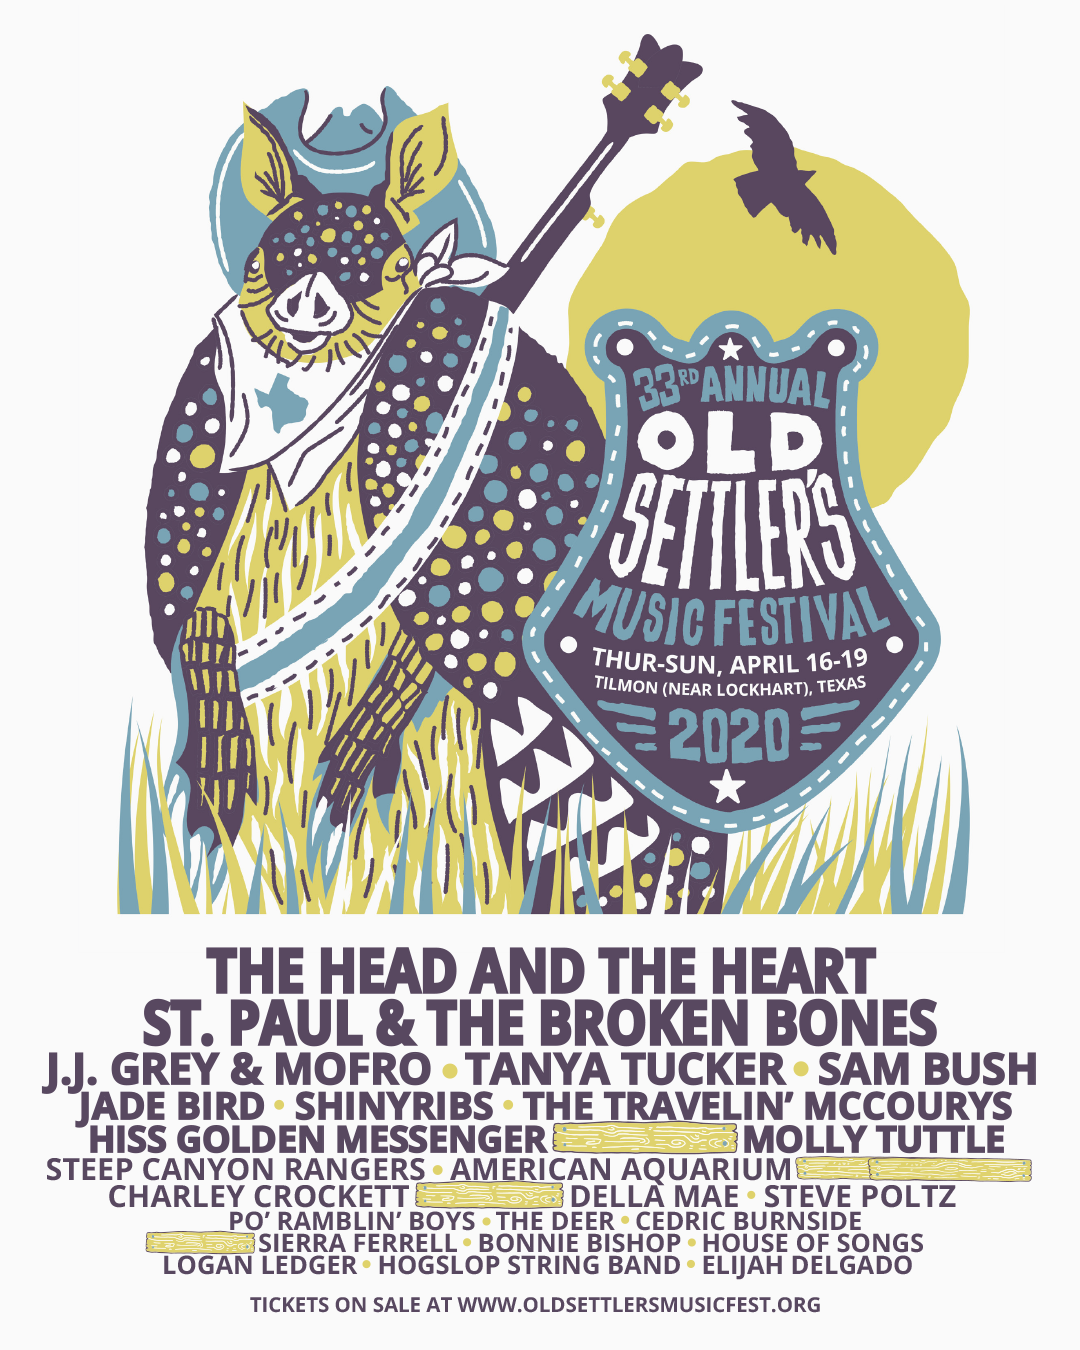 The Head and The Heart, St. Paul & The Broken Bones, Tanya Tucker to Headline the 2020 Old Settler's Music Festival